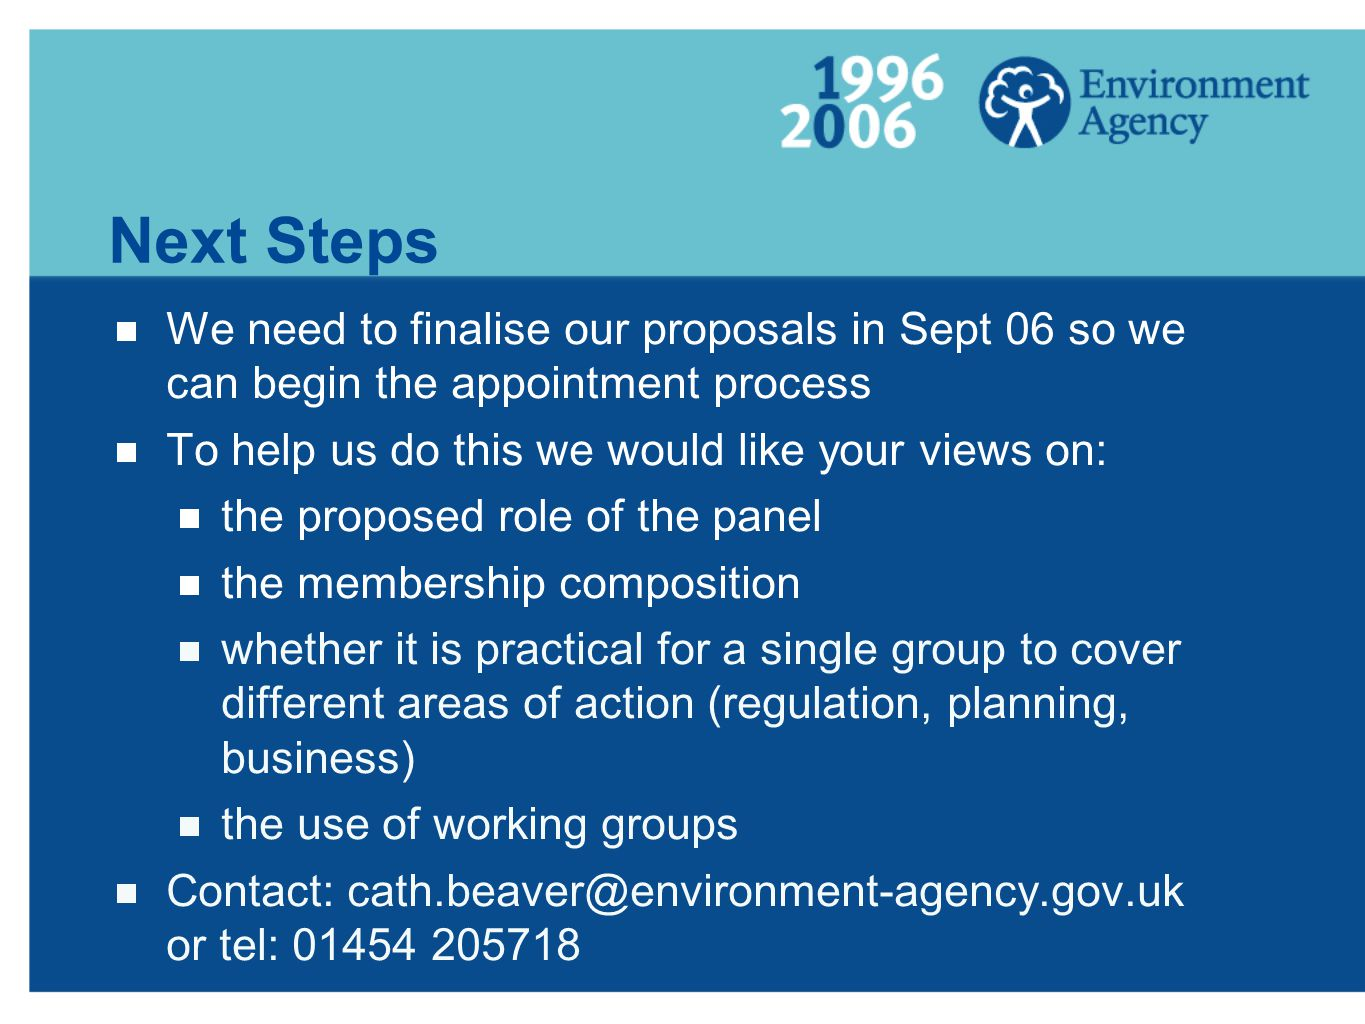 Next Steps We need to finalise our proposals in Sept 06 so we can begin the appointment process To help us do this we would like your views on: the proposed role of the panel the membership composition whether it is practical for a single group to cover different areas of action (regulation, planning, business) the use of working groups Contact: or tel: